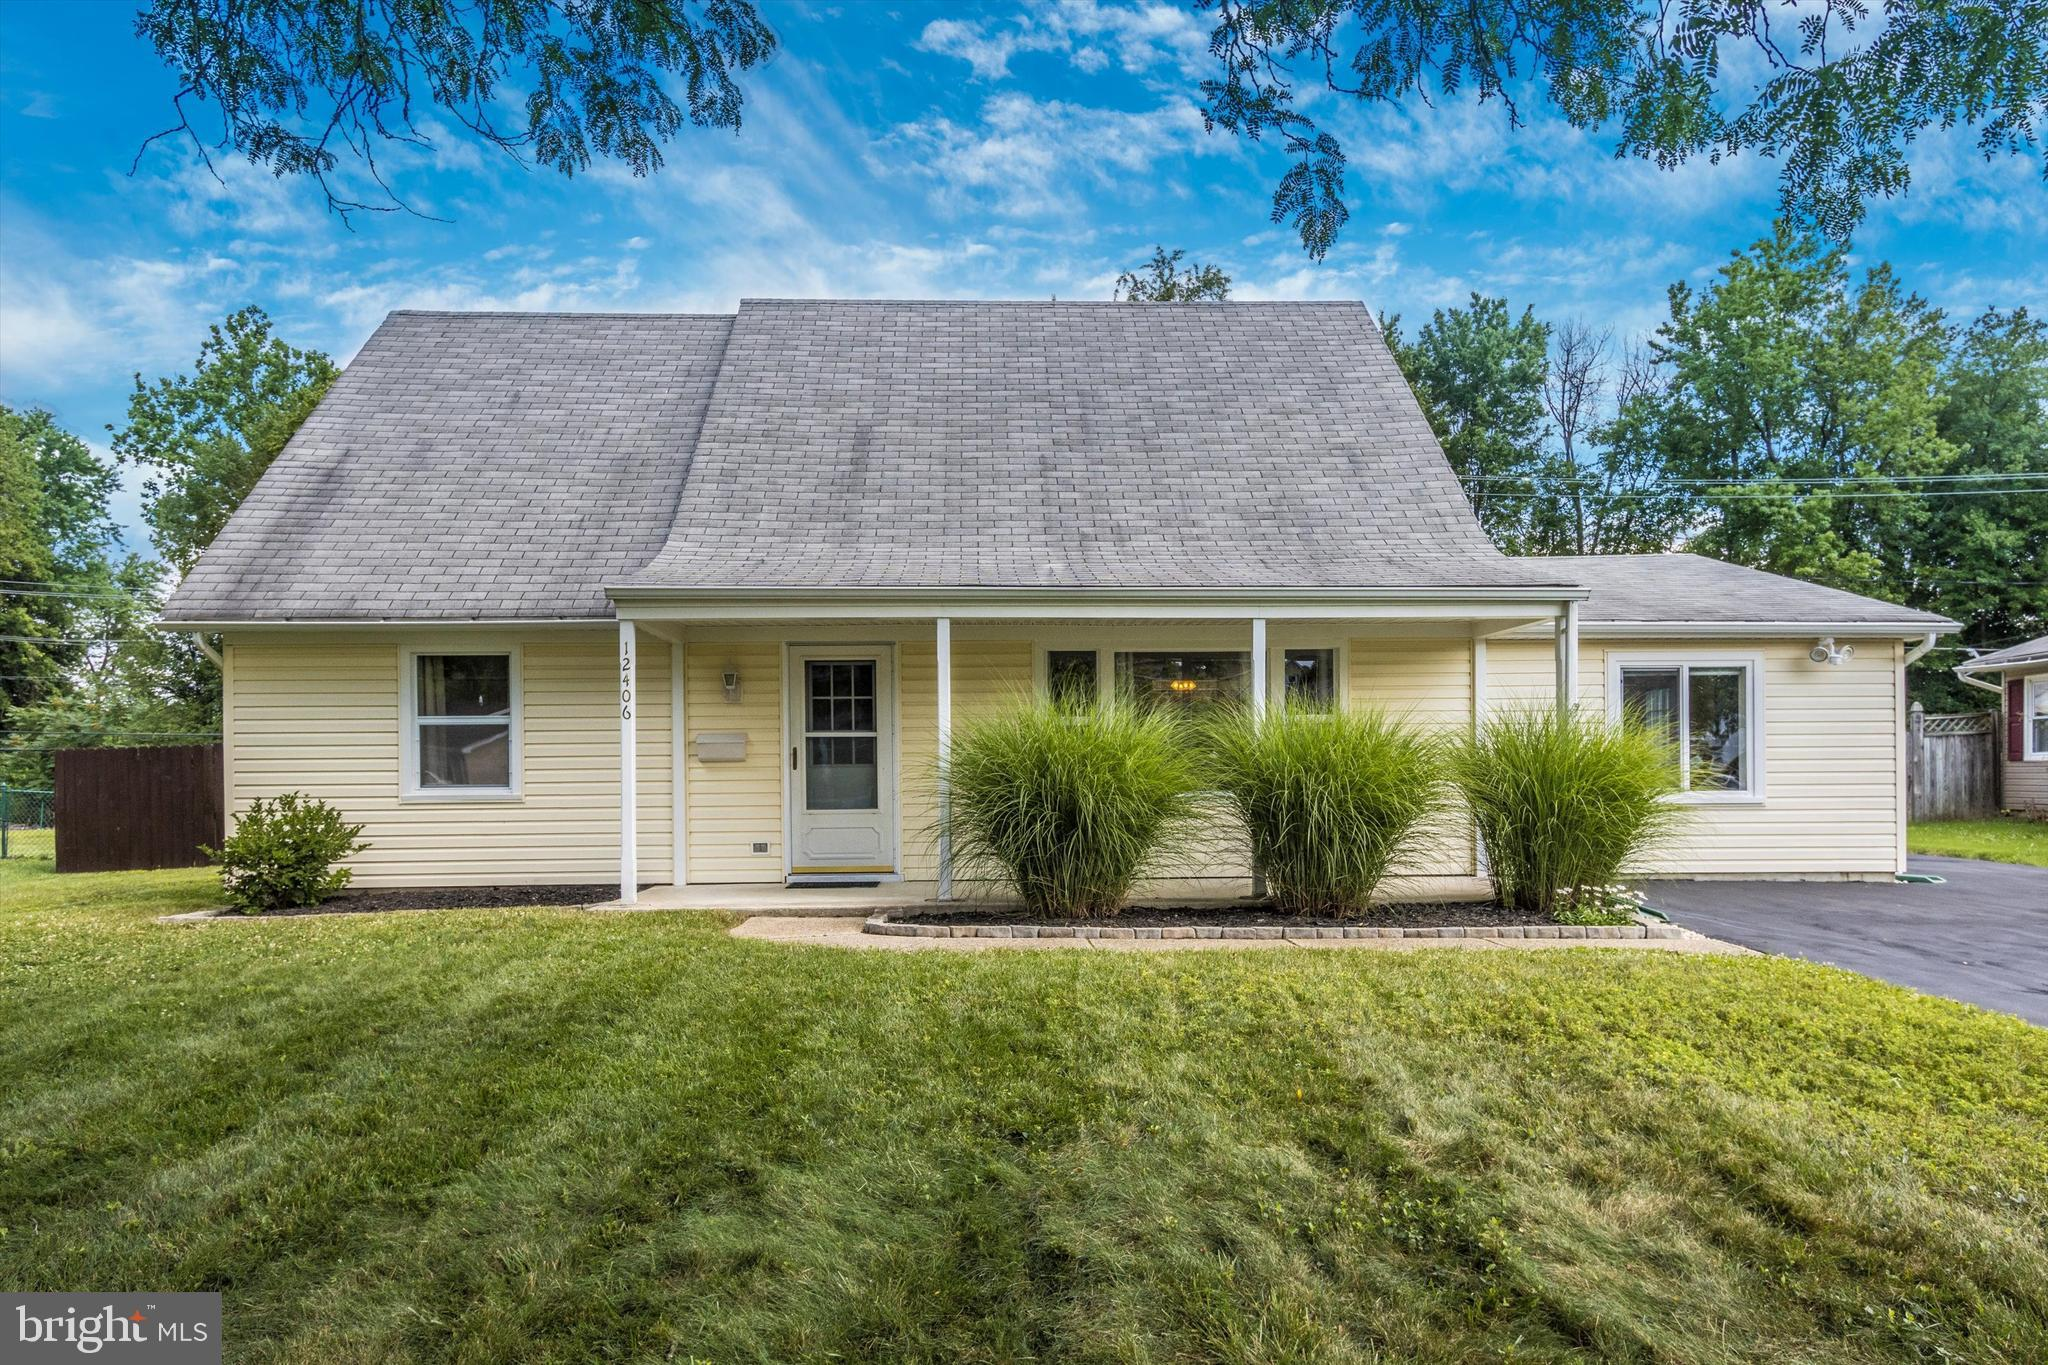 You can't miss this one!  Check out this amazing 4BR, 2BA Cape Cod style home for sale in Bowie, MD!